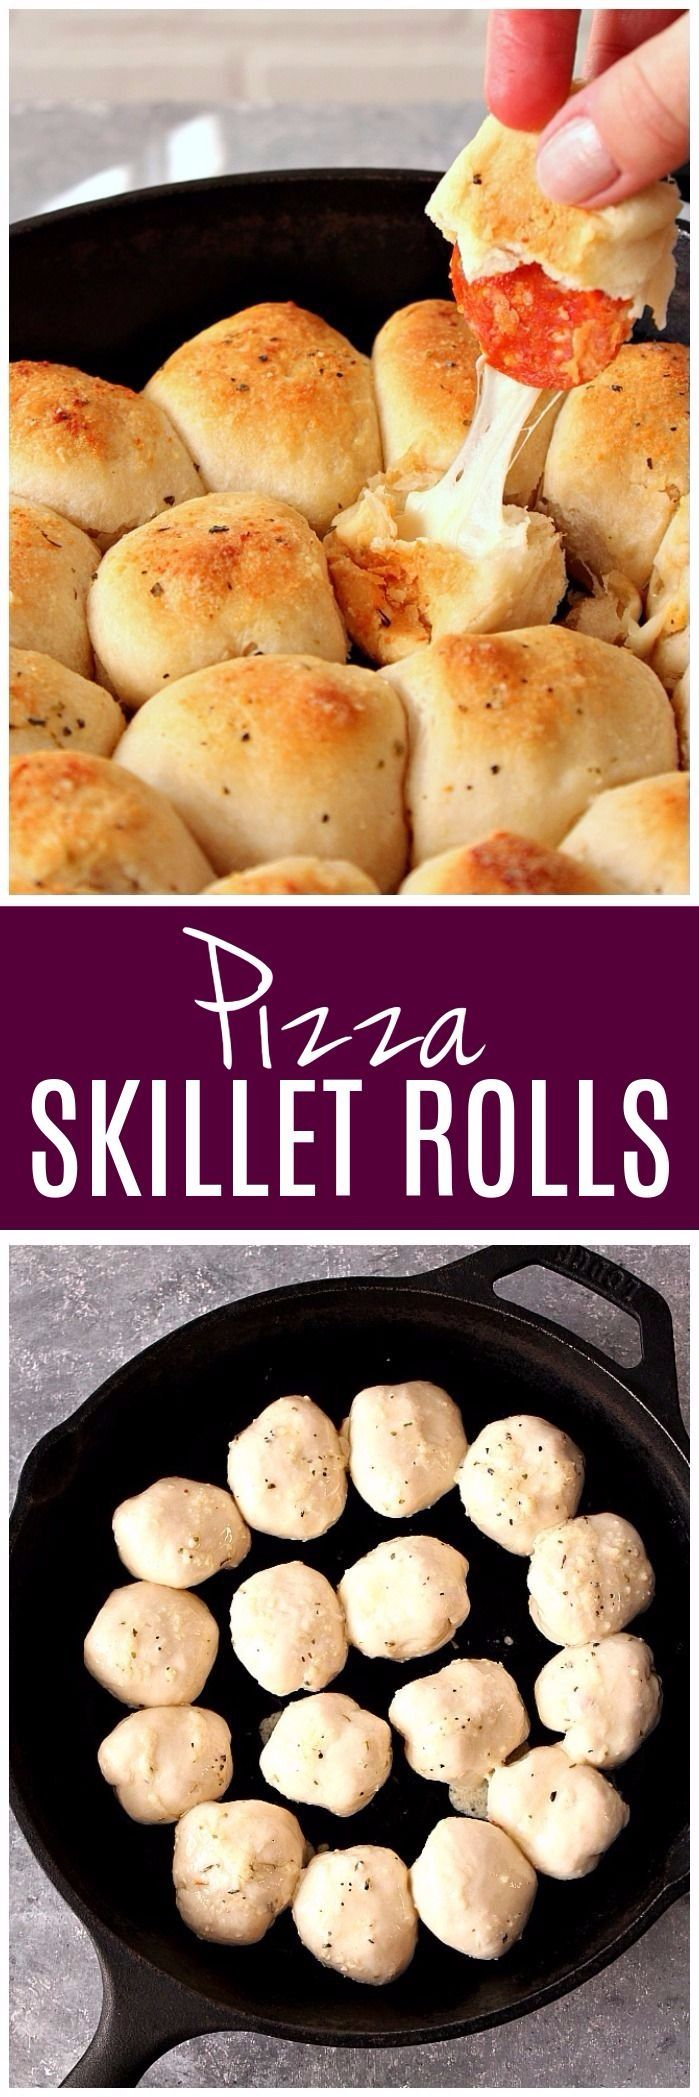 Easy Skillet Pizza Rolls recipe - filled with pepperoni and cheese, these rolls are perfect dipped in pizza sauce! www.crunchycreamysweet.com